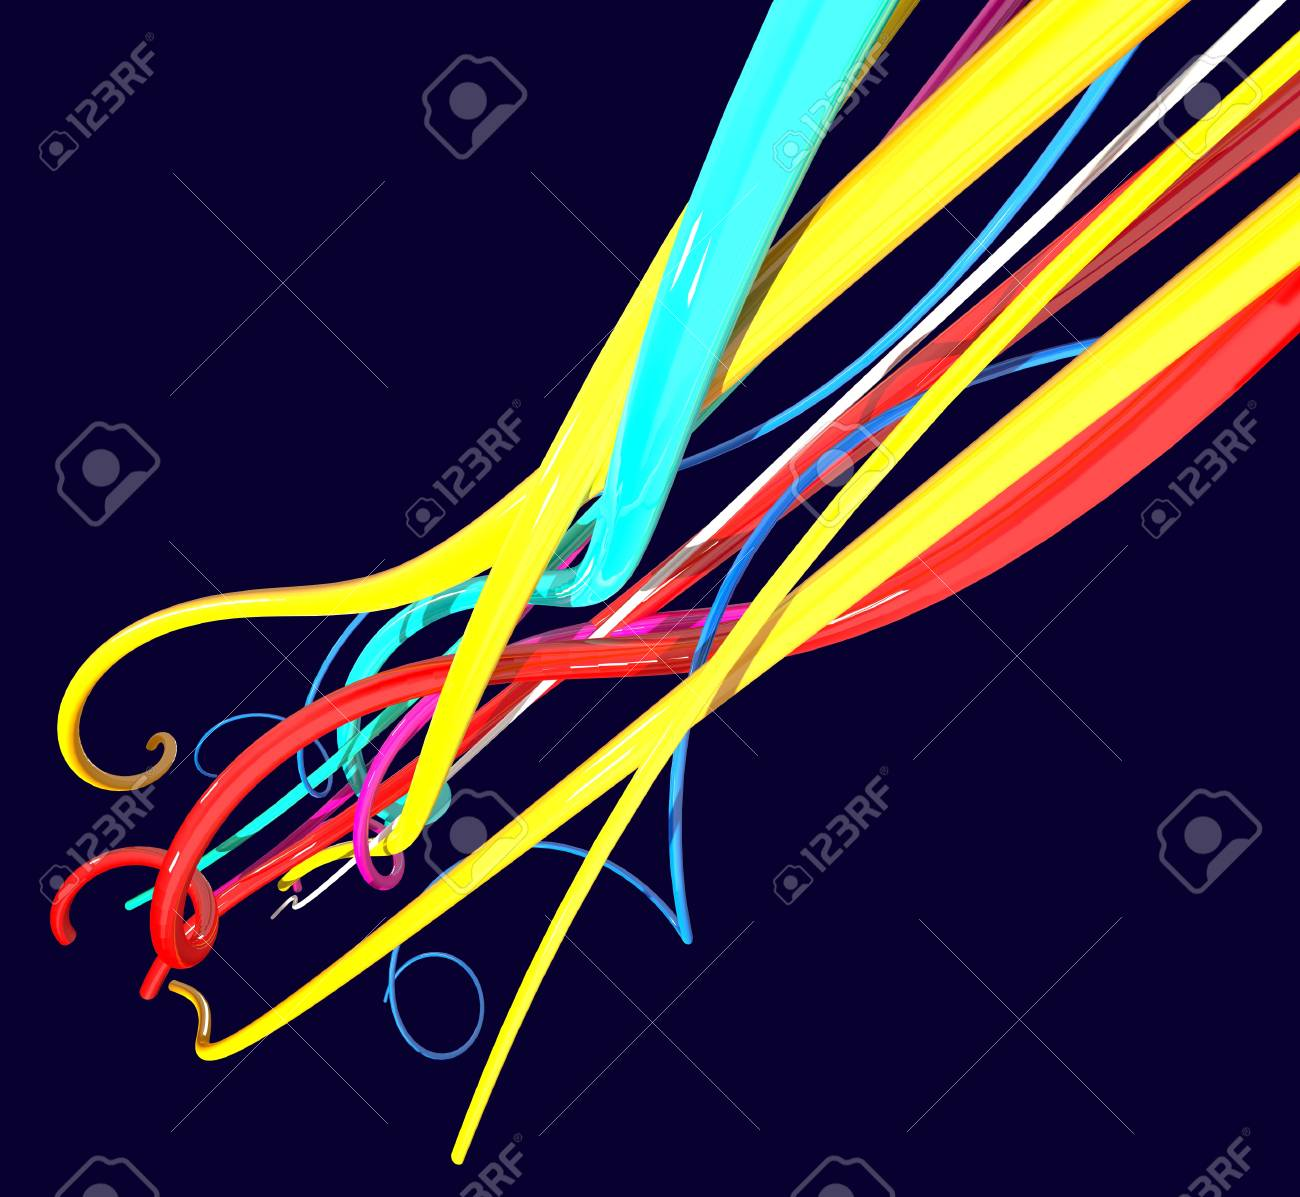 Color Wires Isolated On Black Stock Photo, Picture And Royalty Free ...